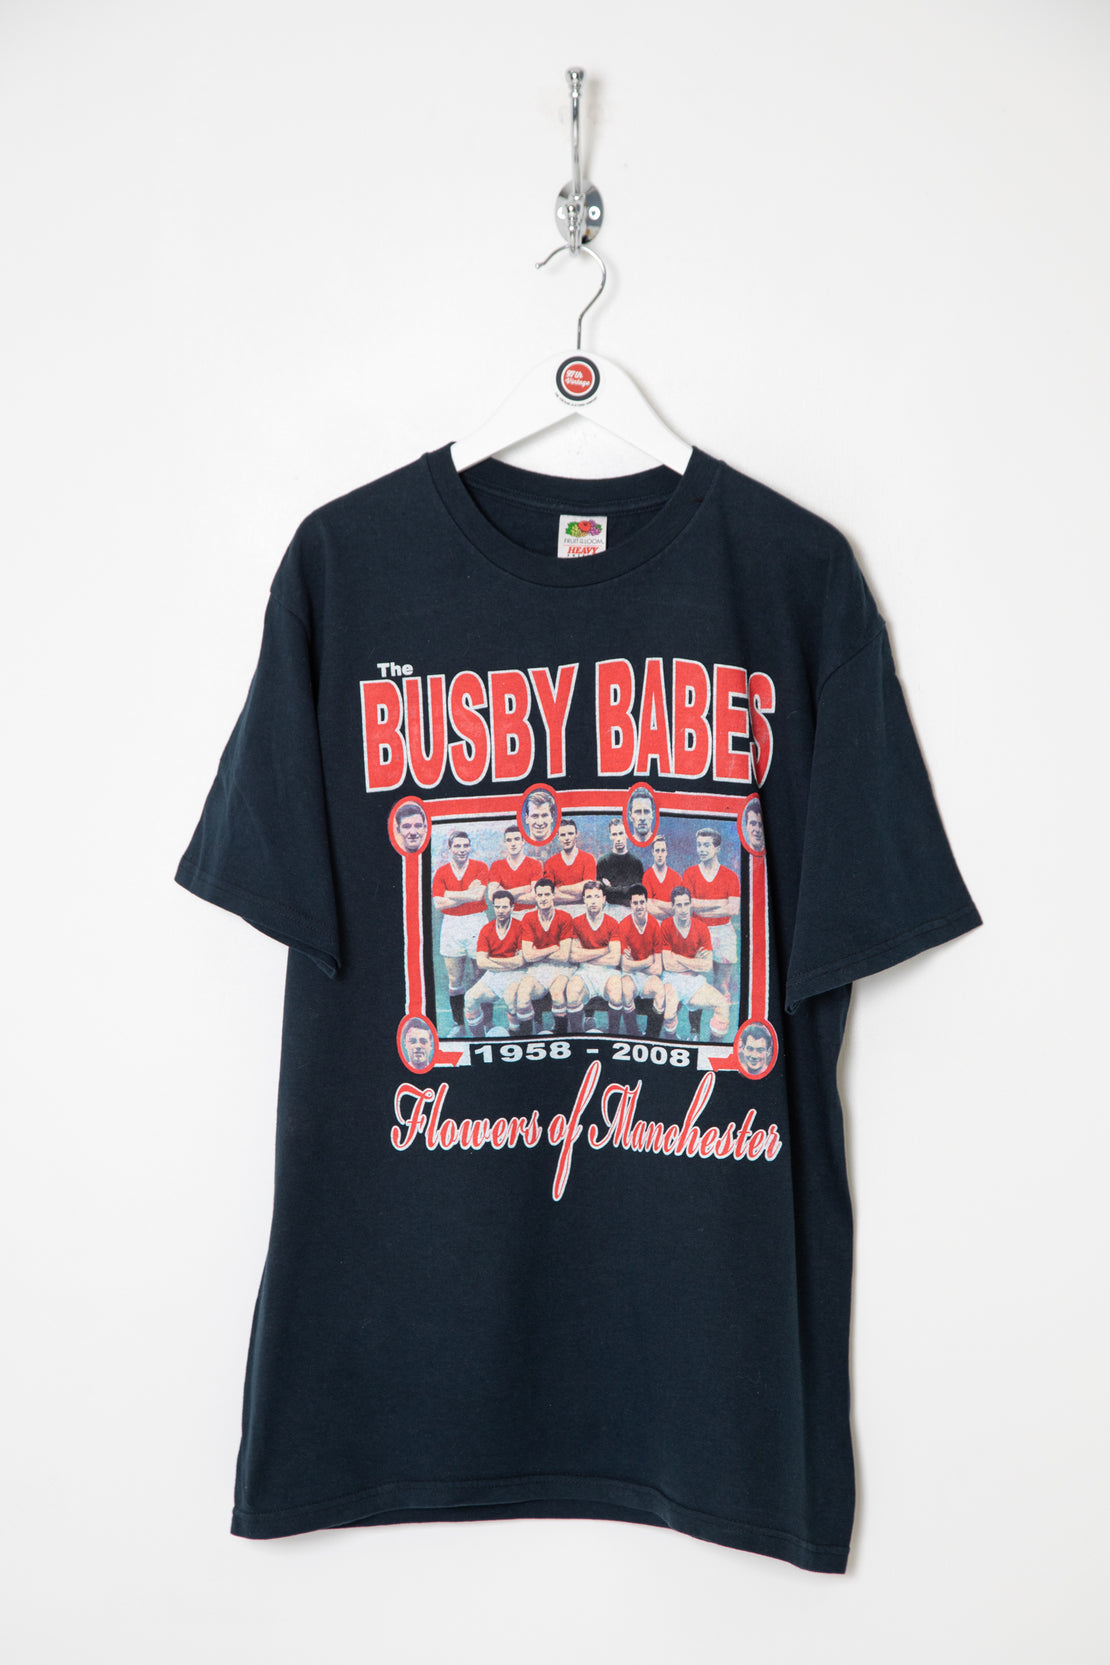 The Busby Babes T-Shirt (L)